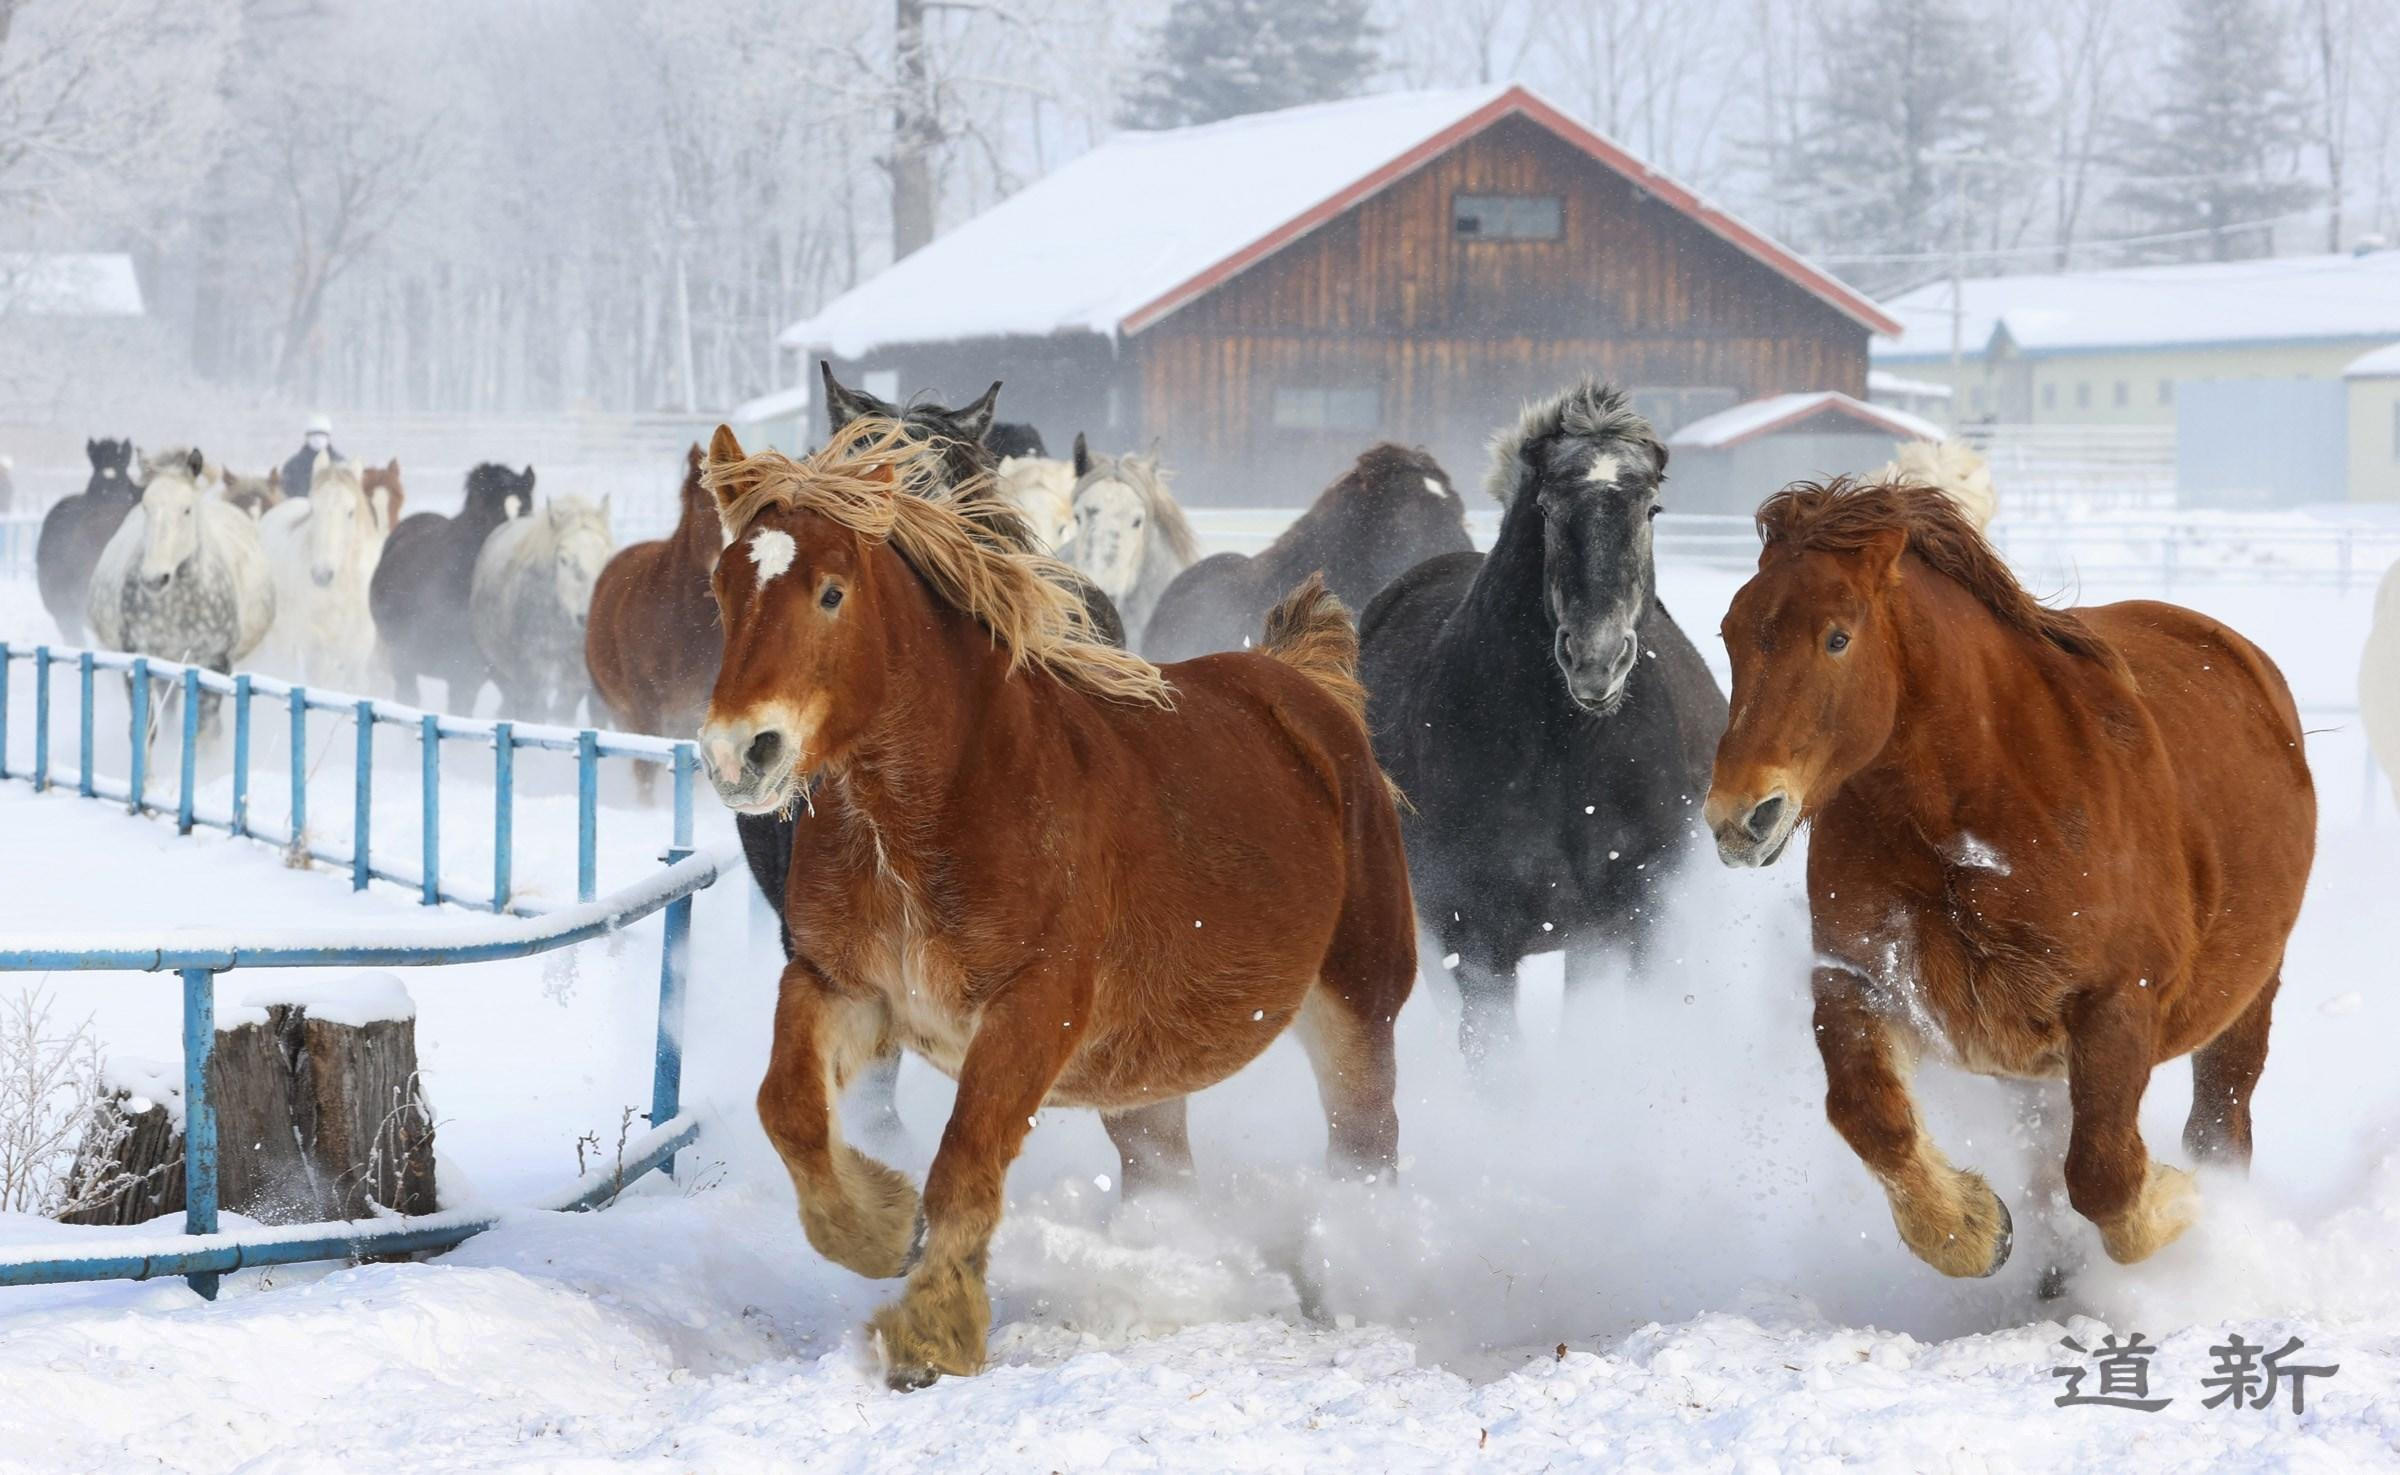 Photo:Snow whipped up by 87 sprinting horses